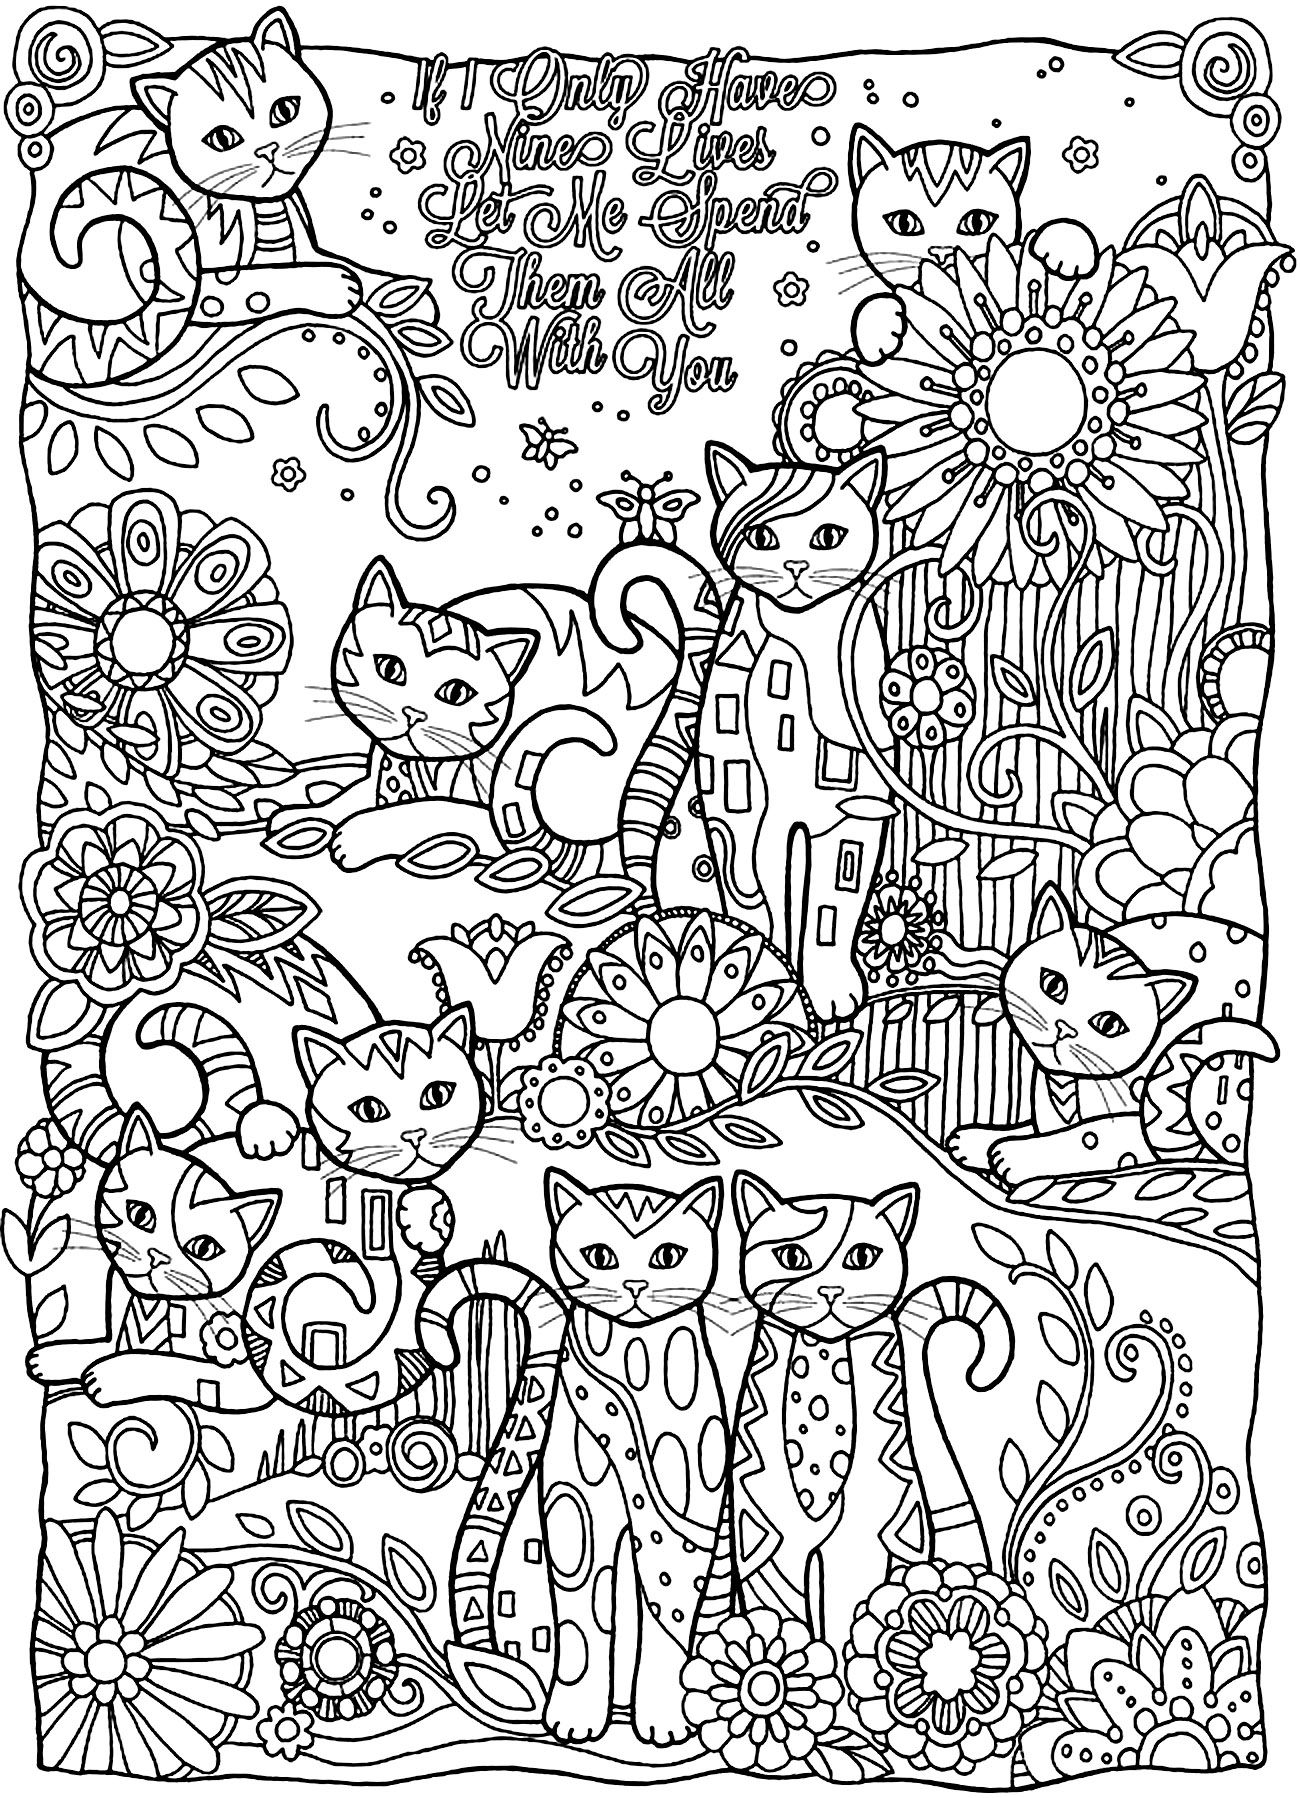 coloring adults pages cat coloring pages for adults best coloring pages for kids pages adults coloring